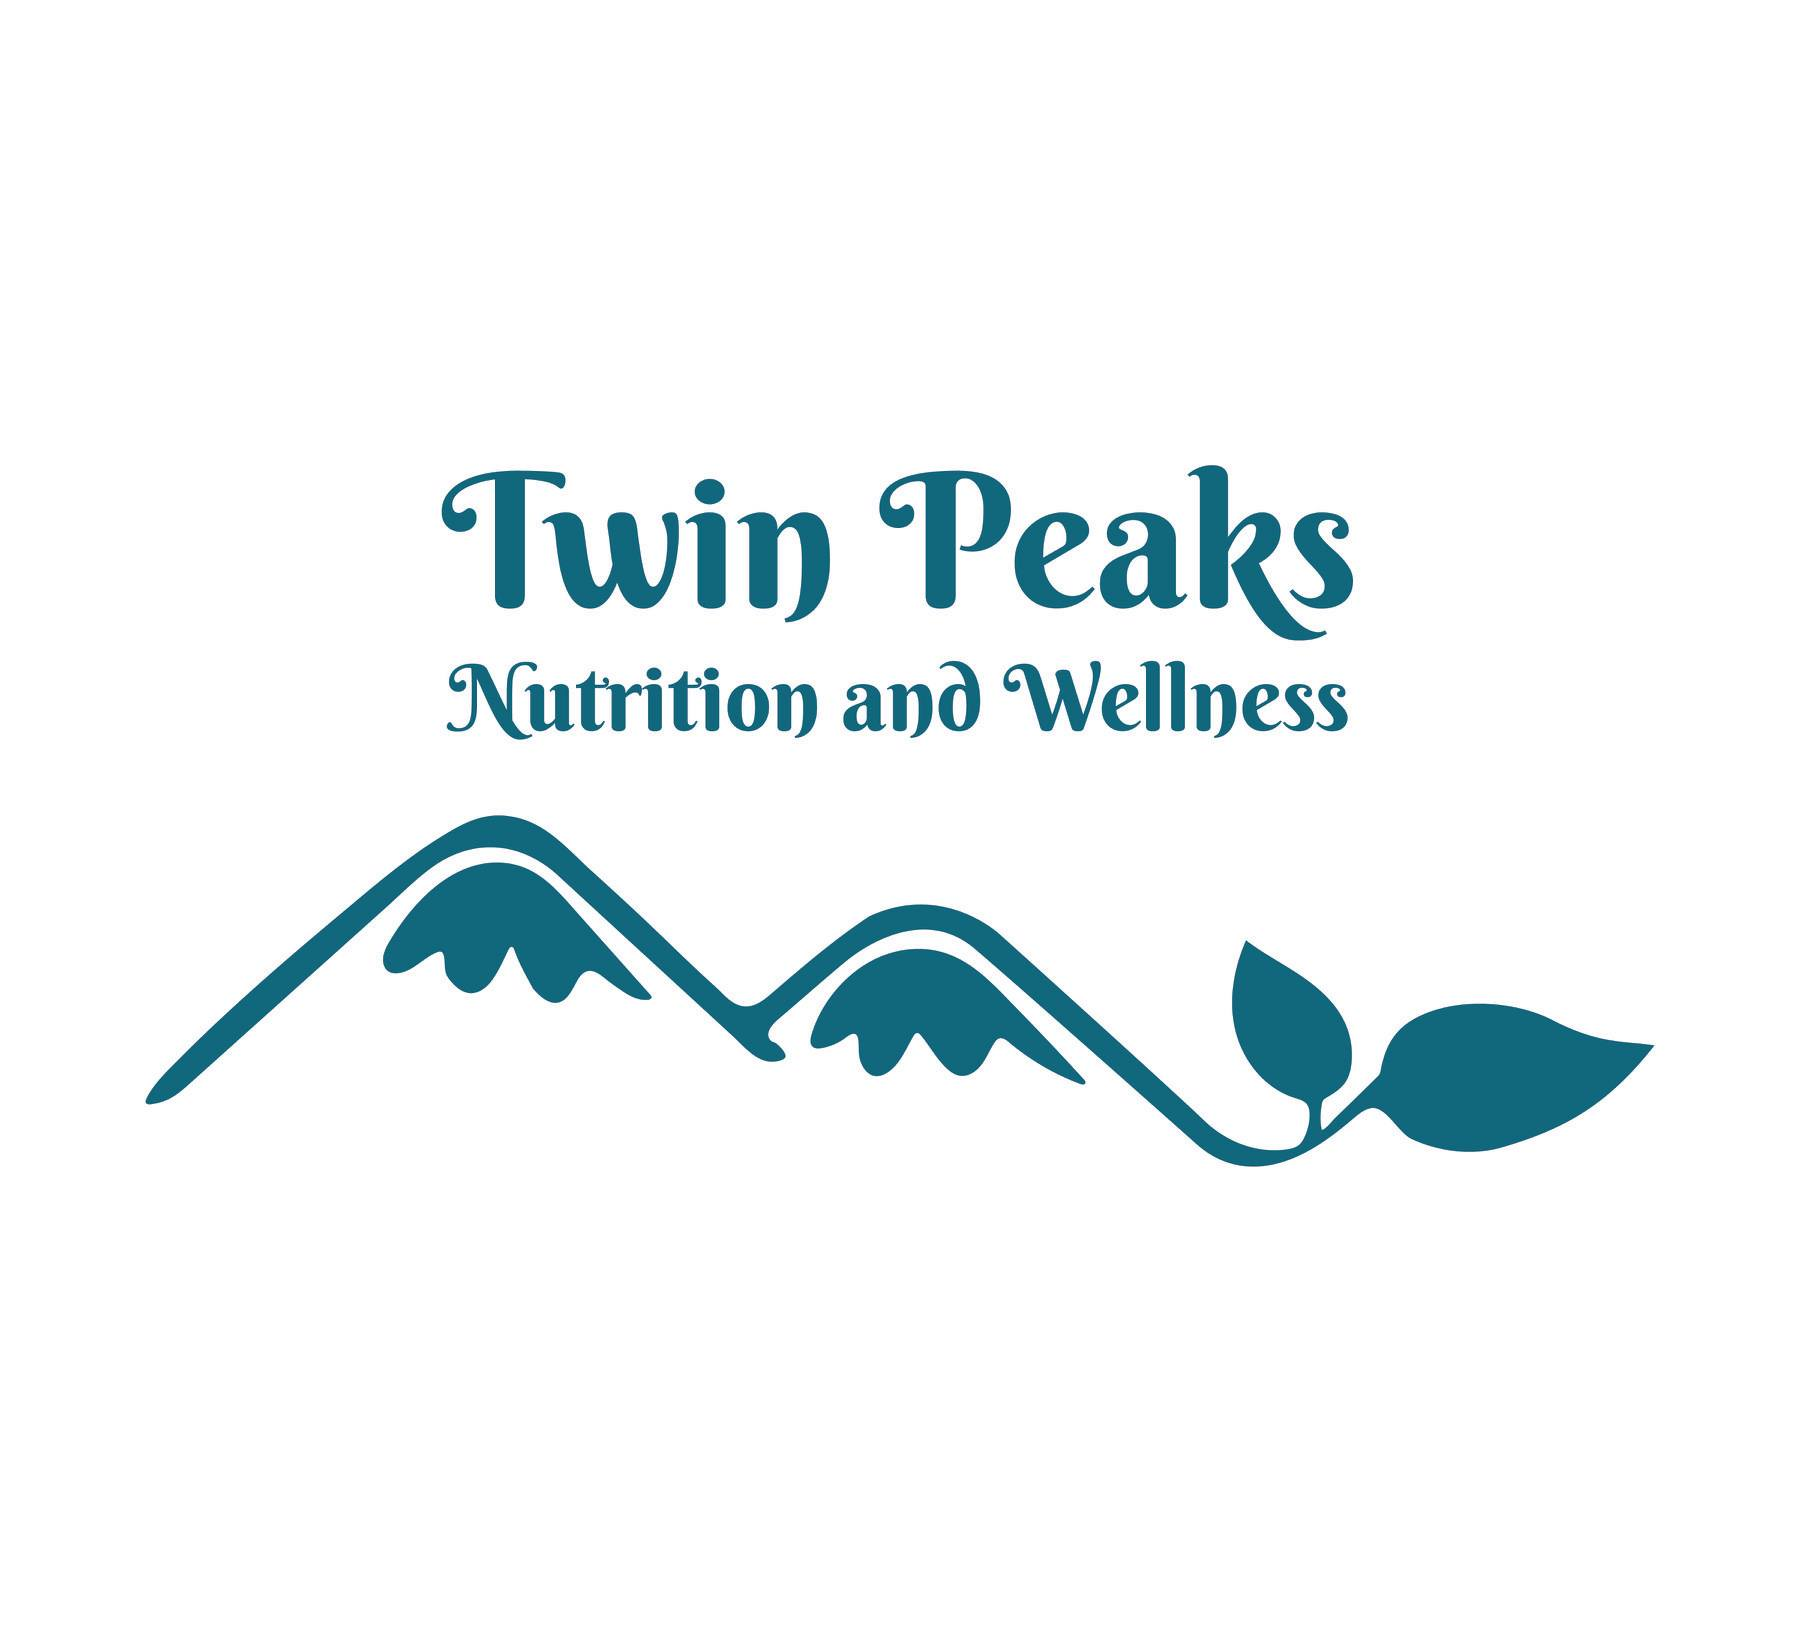 TP Nutrition and Wellness